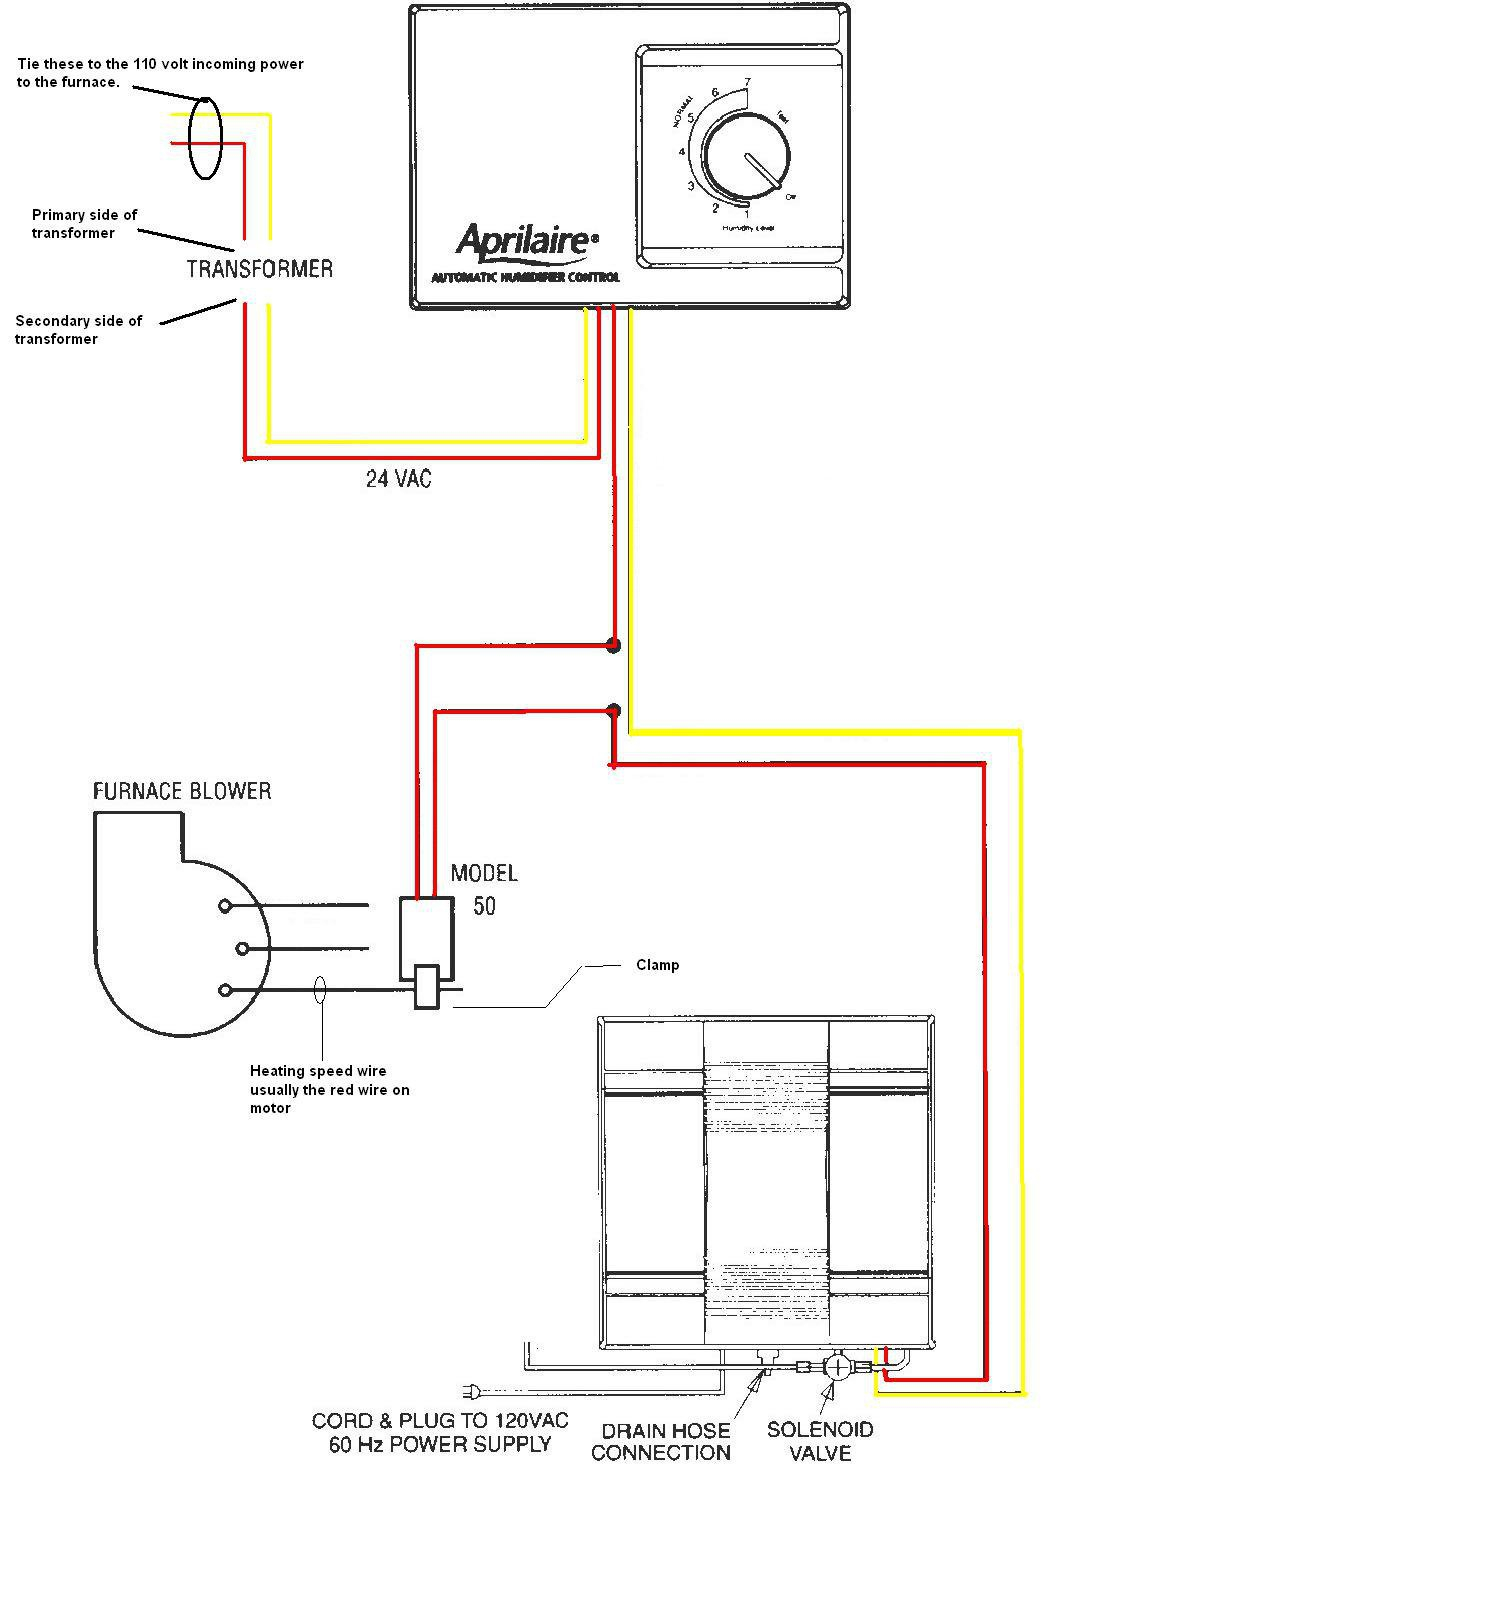 aprilaire humidifier wiring diagram Collection-Ecobee Wiring Diagram Fresh Ecobee Wiring Diagram Beautiful Best Honeywell Humidifier Wiring 8-s